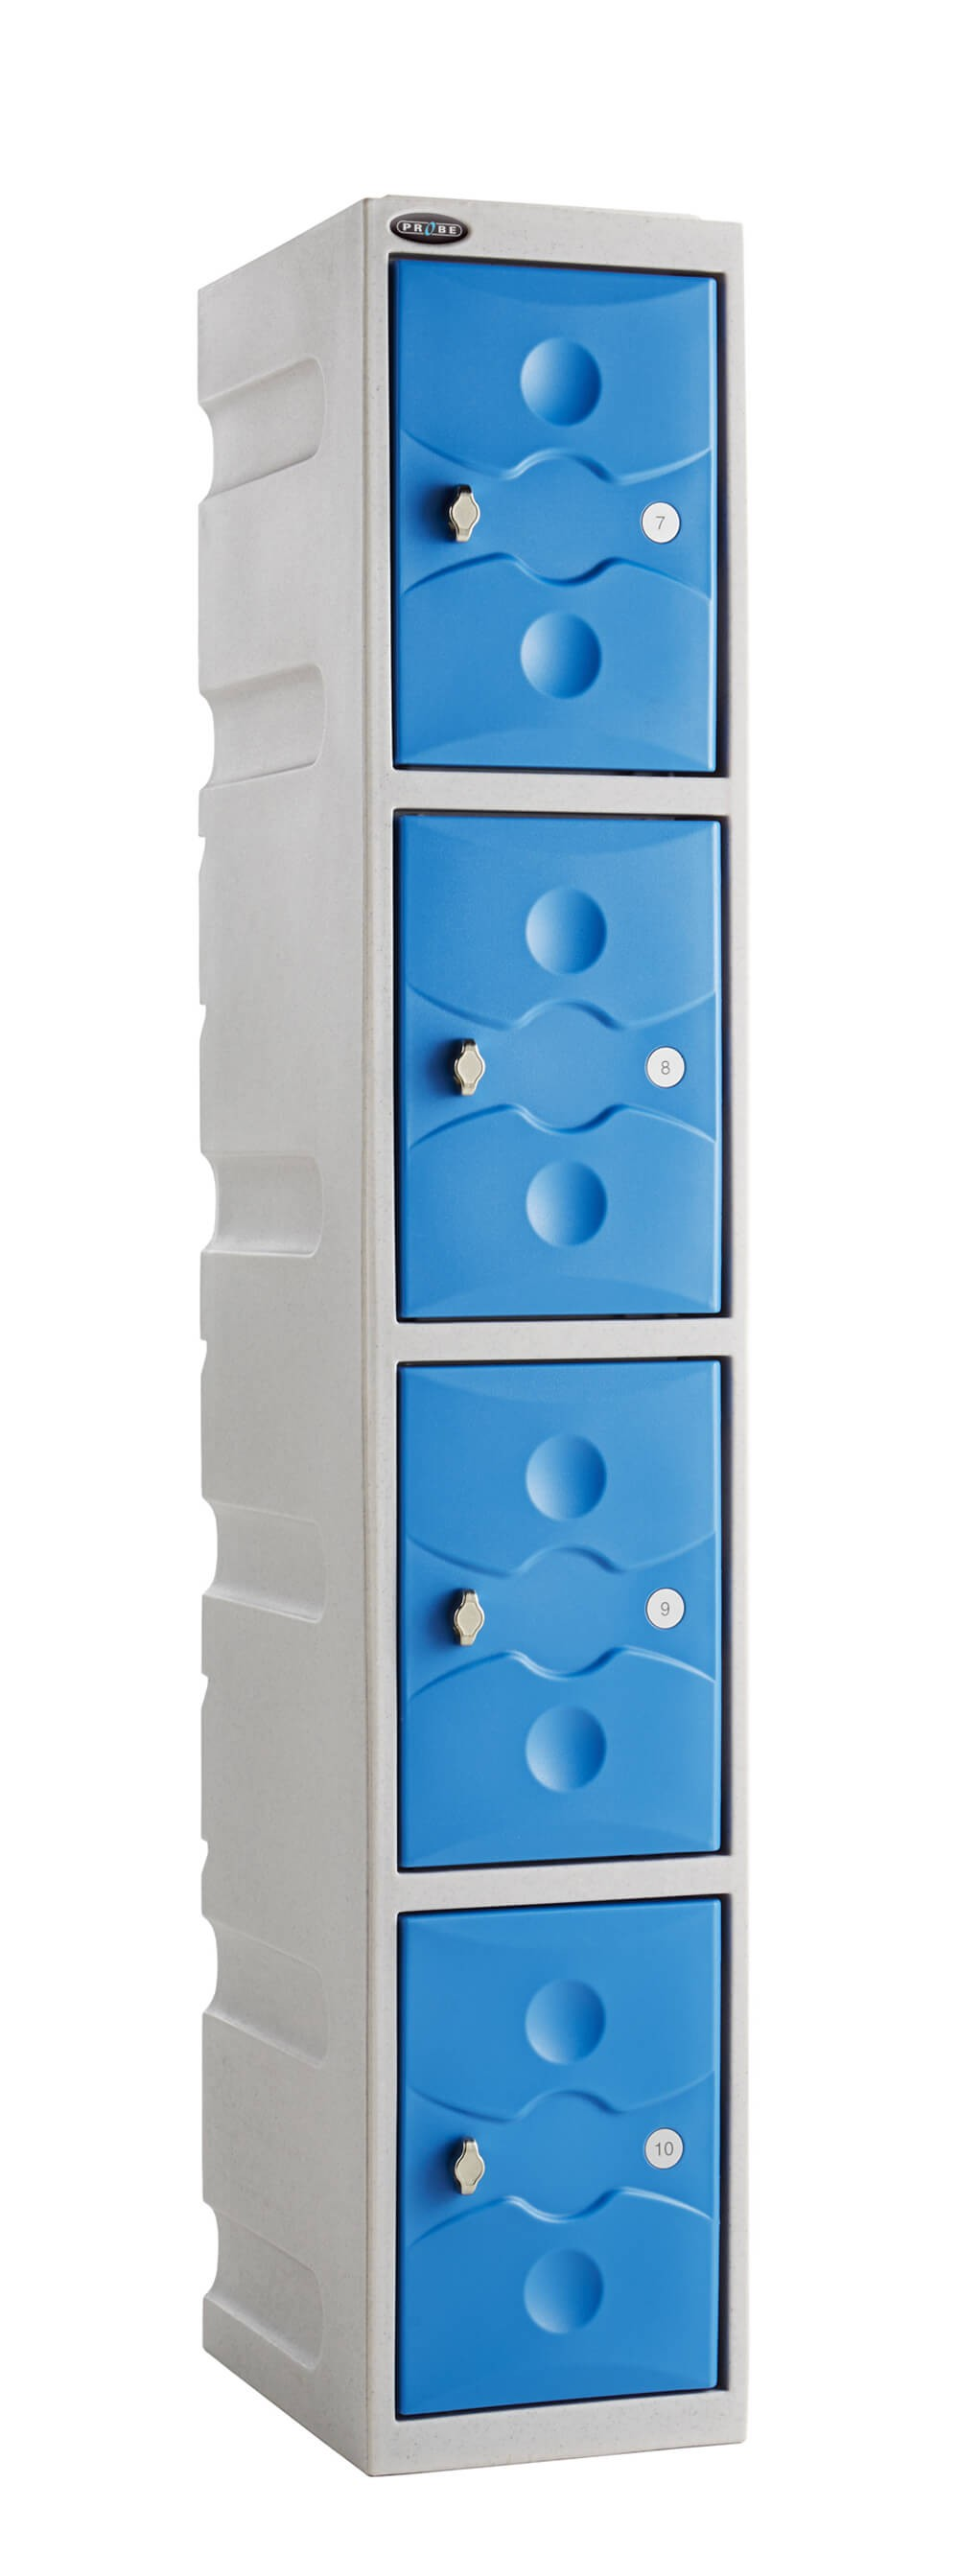 Four Compartment Locker - Dalvie Systems